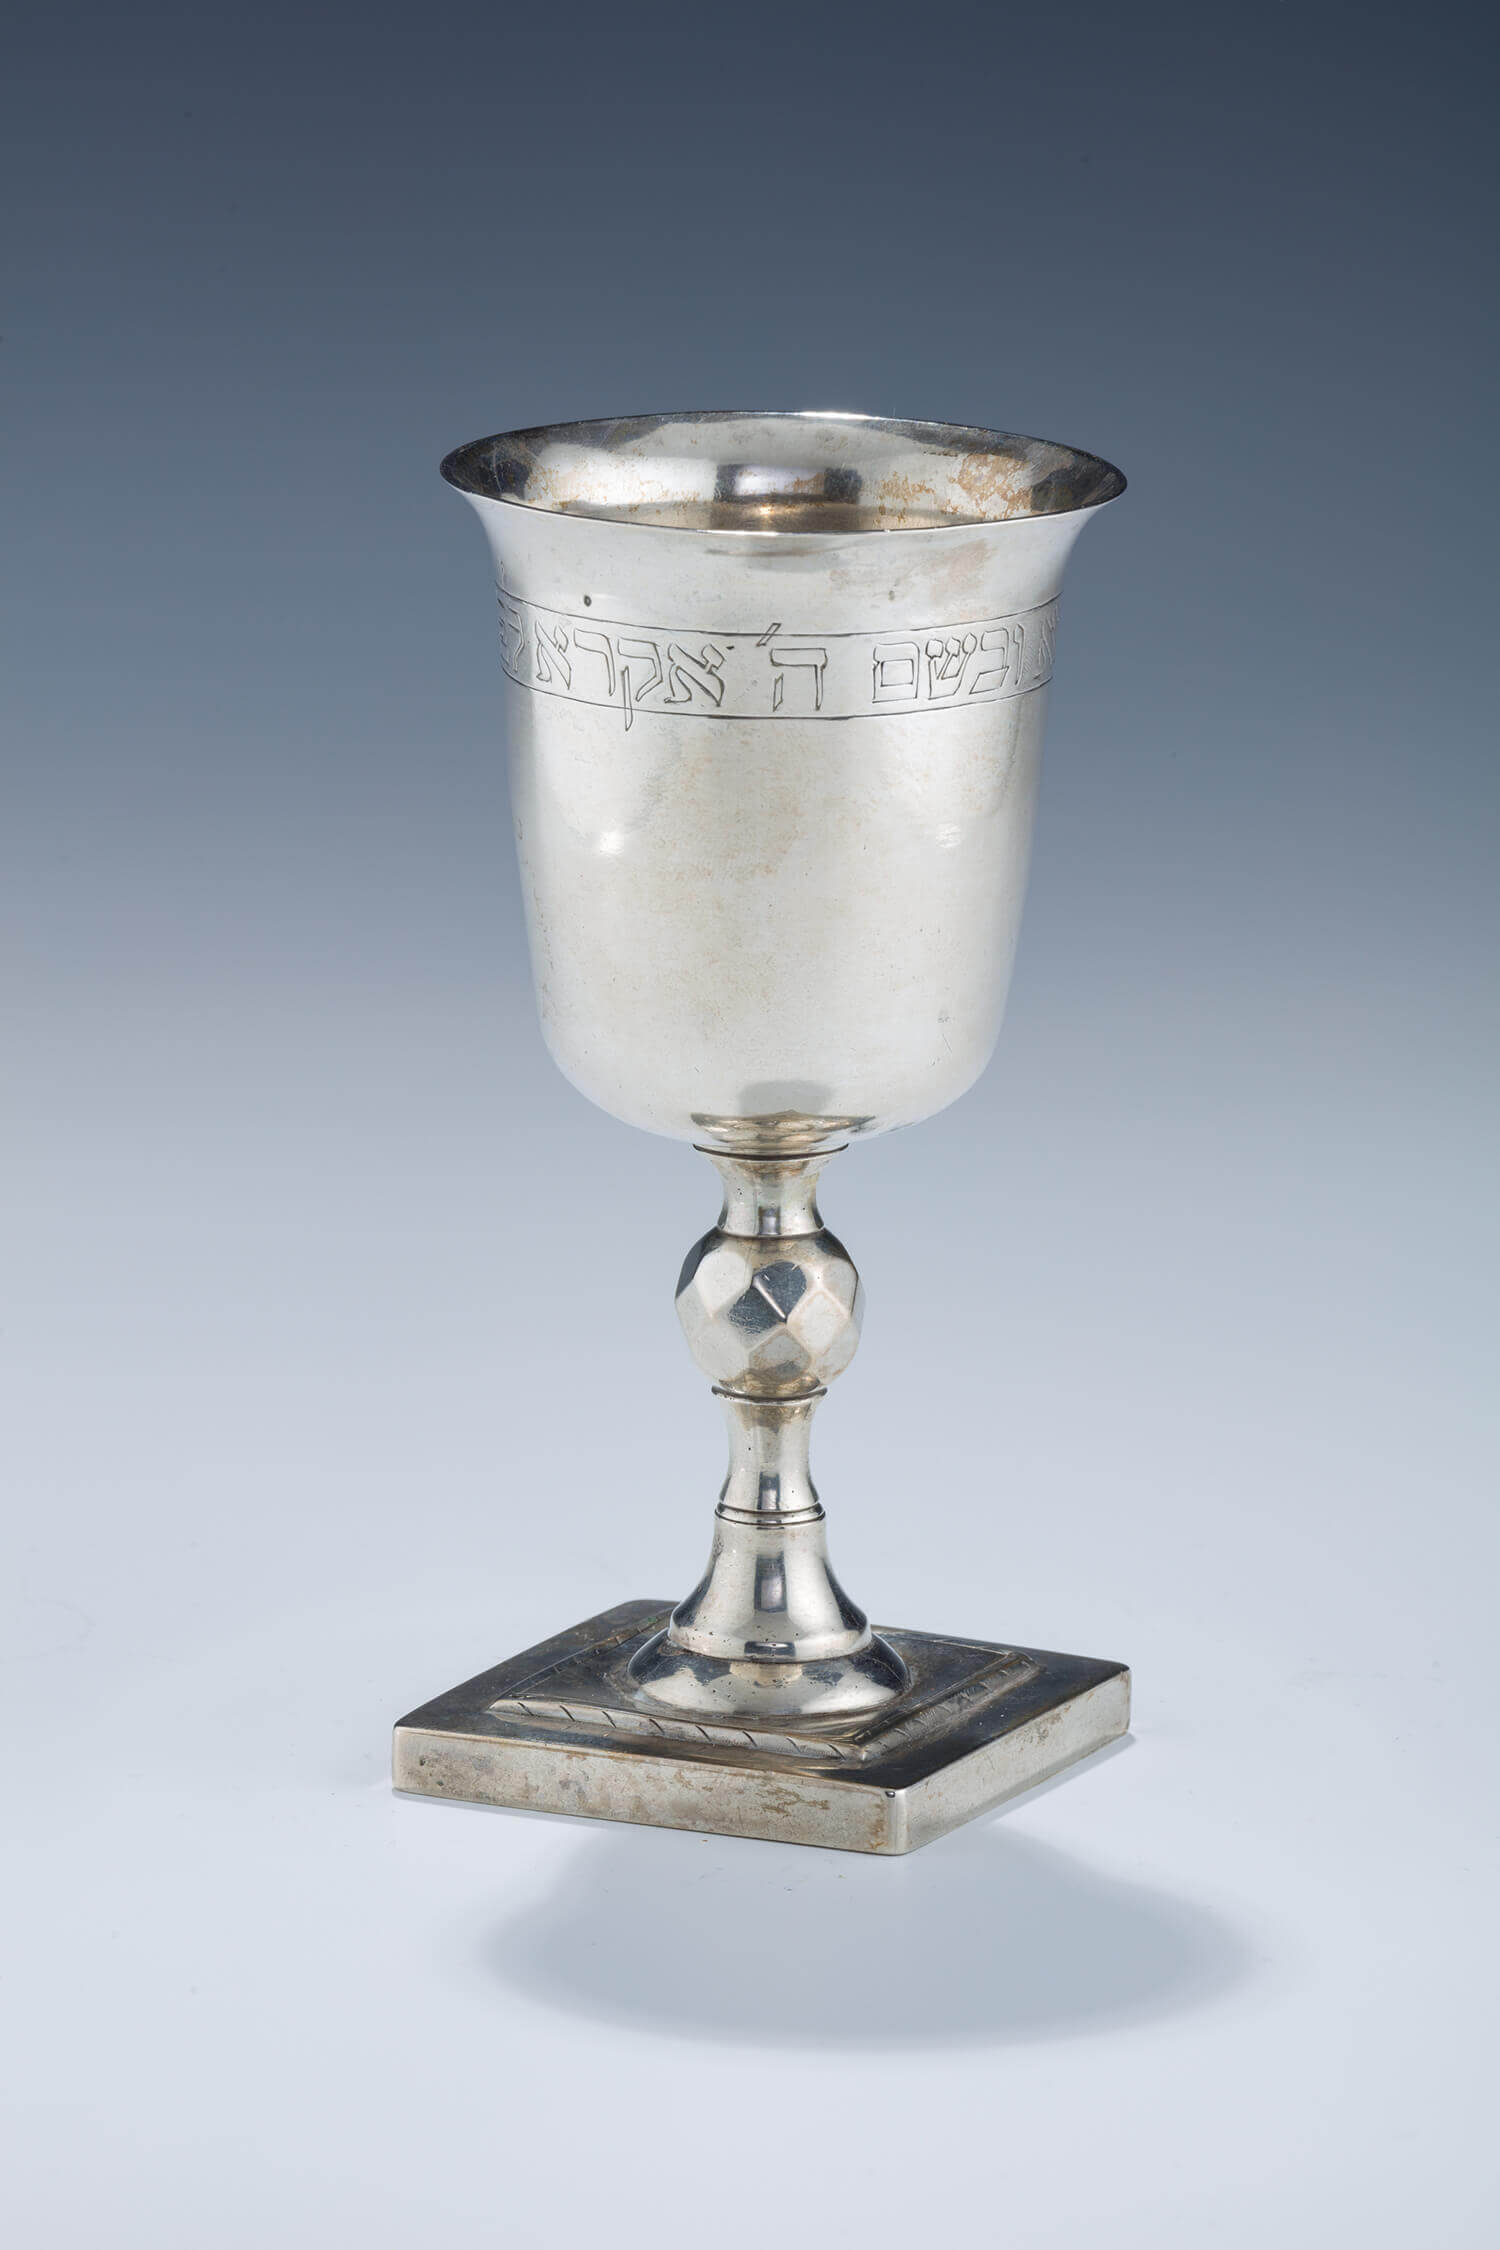 043. A LARGE SILVER KIDDUSH CUP